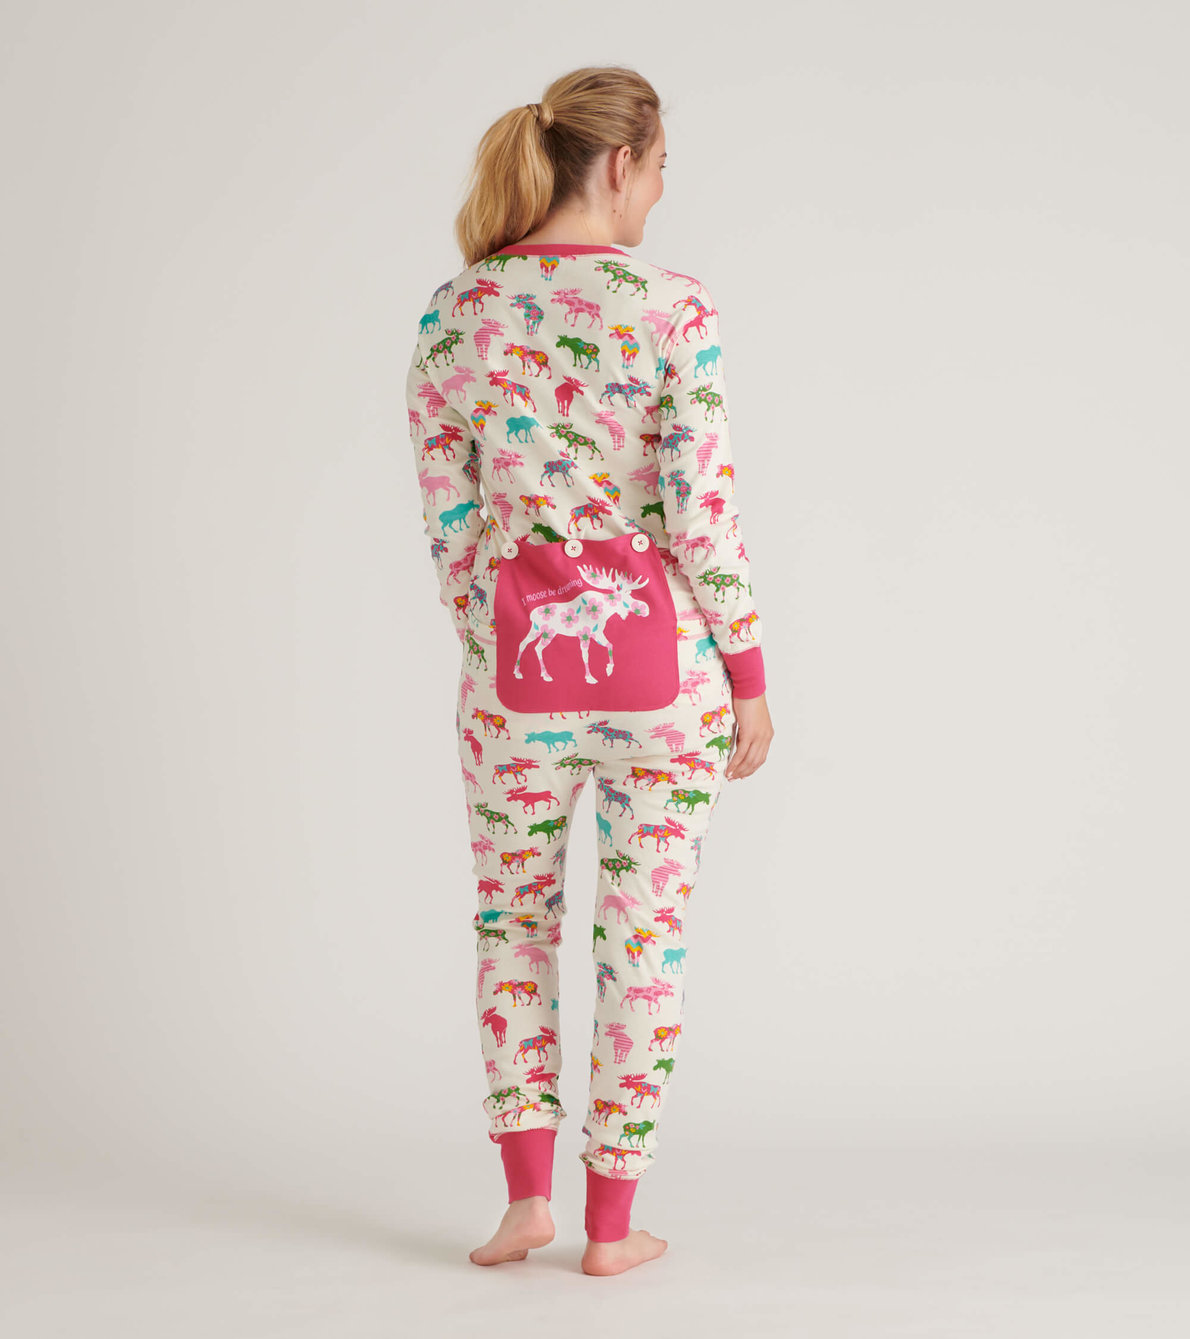 View larger image of Patterned Moose Adult Union Suit